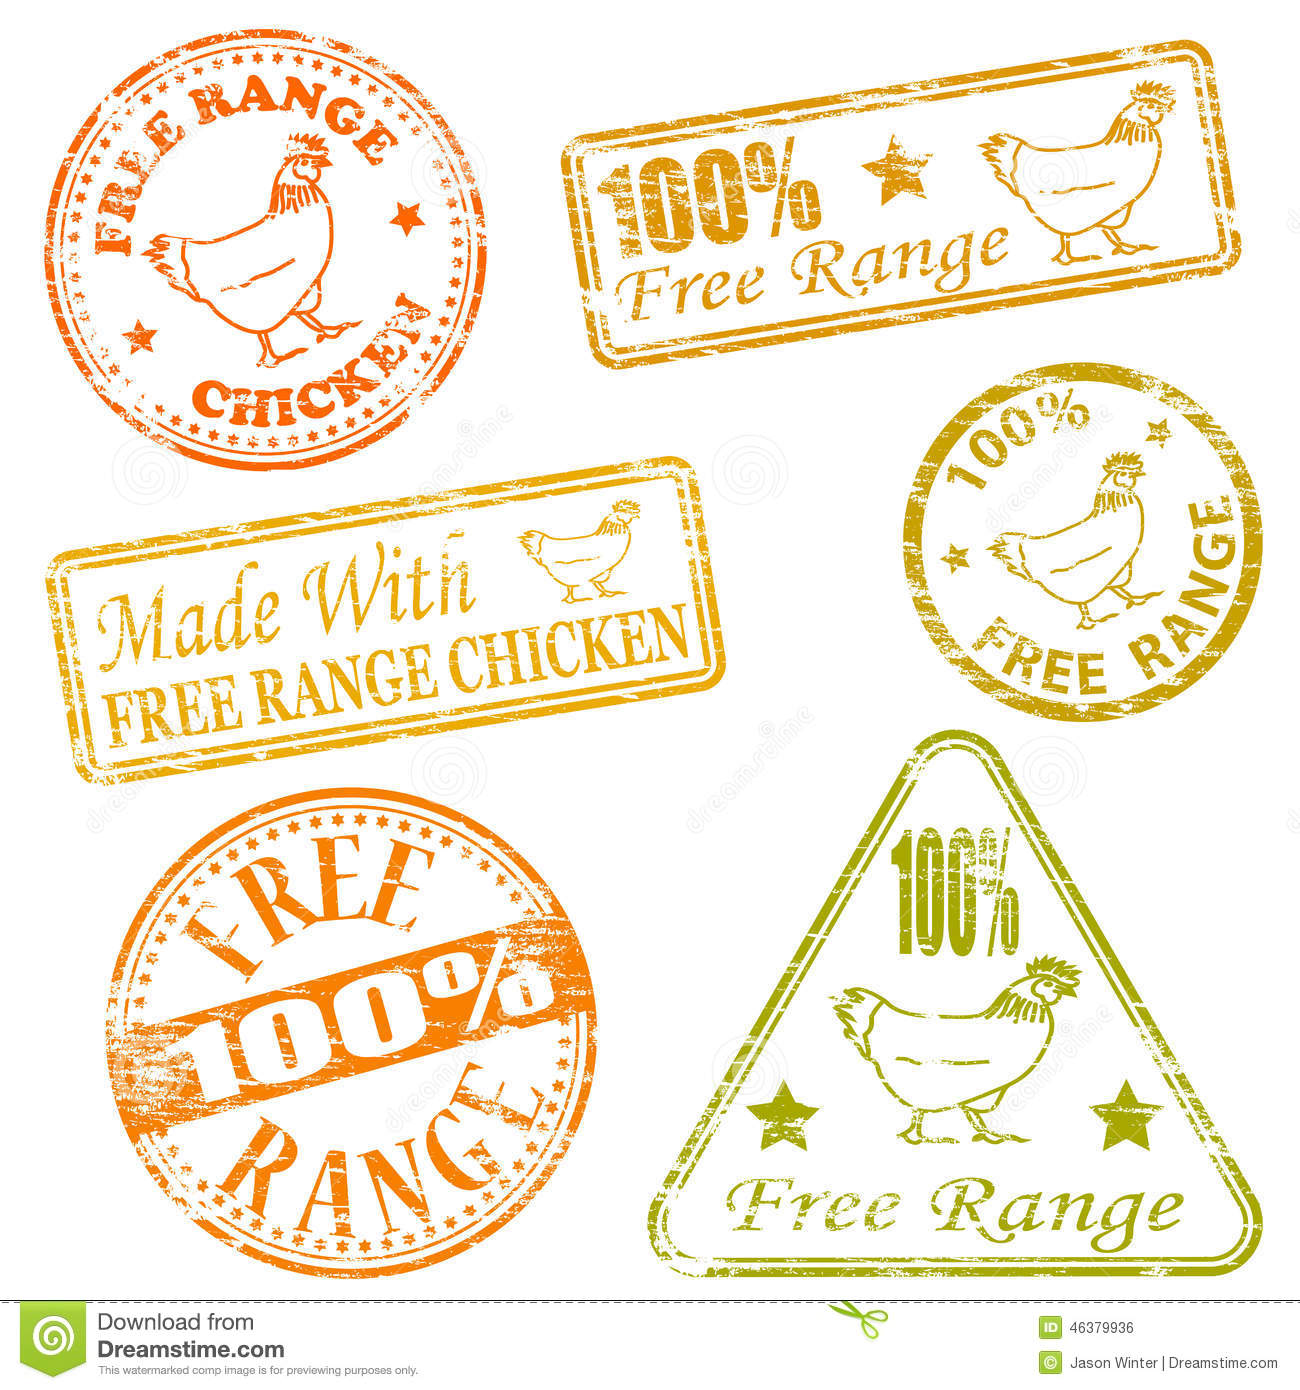 Made With Free Range Chicken Rubber Stamp Vector Illustrations